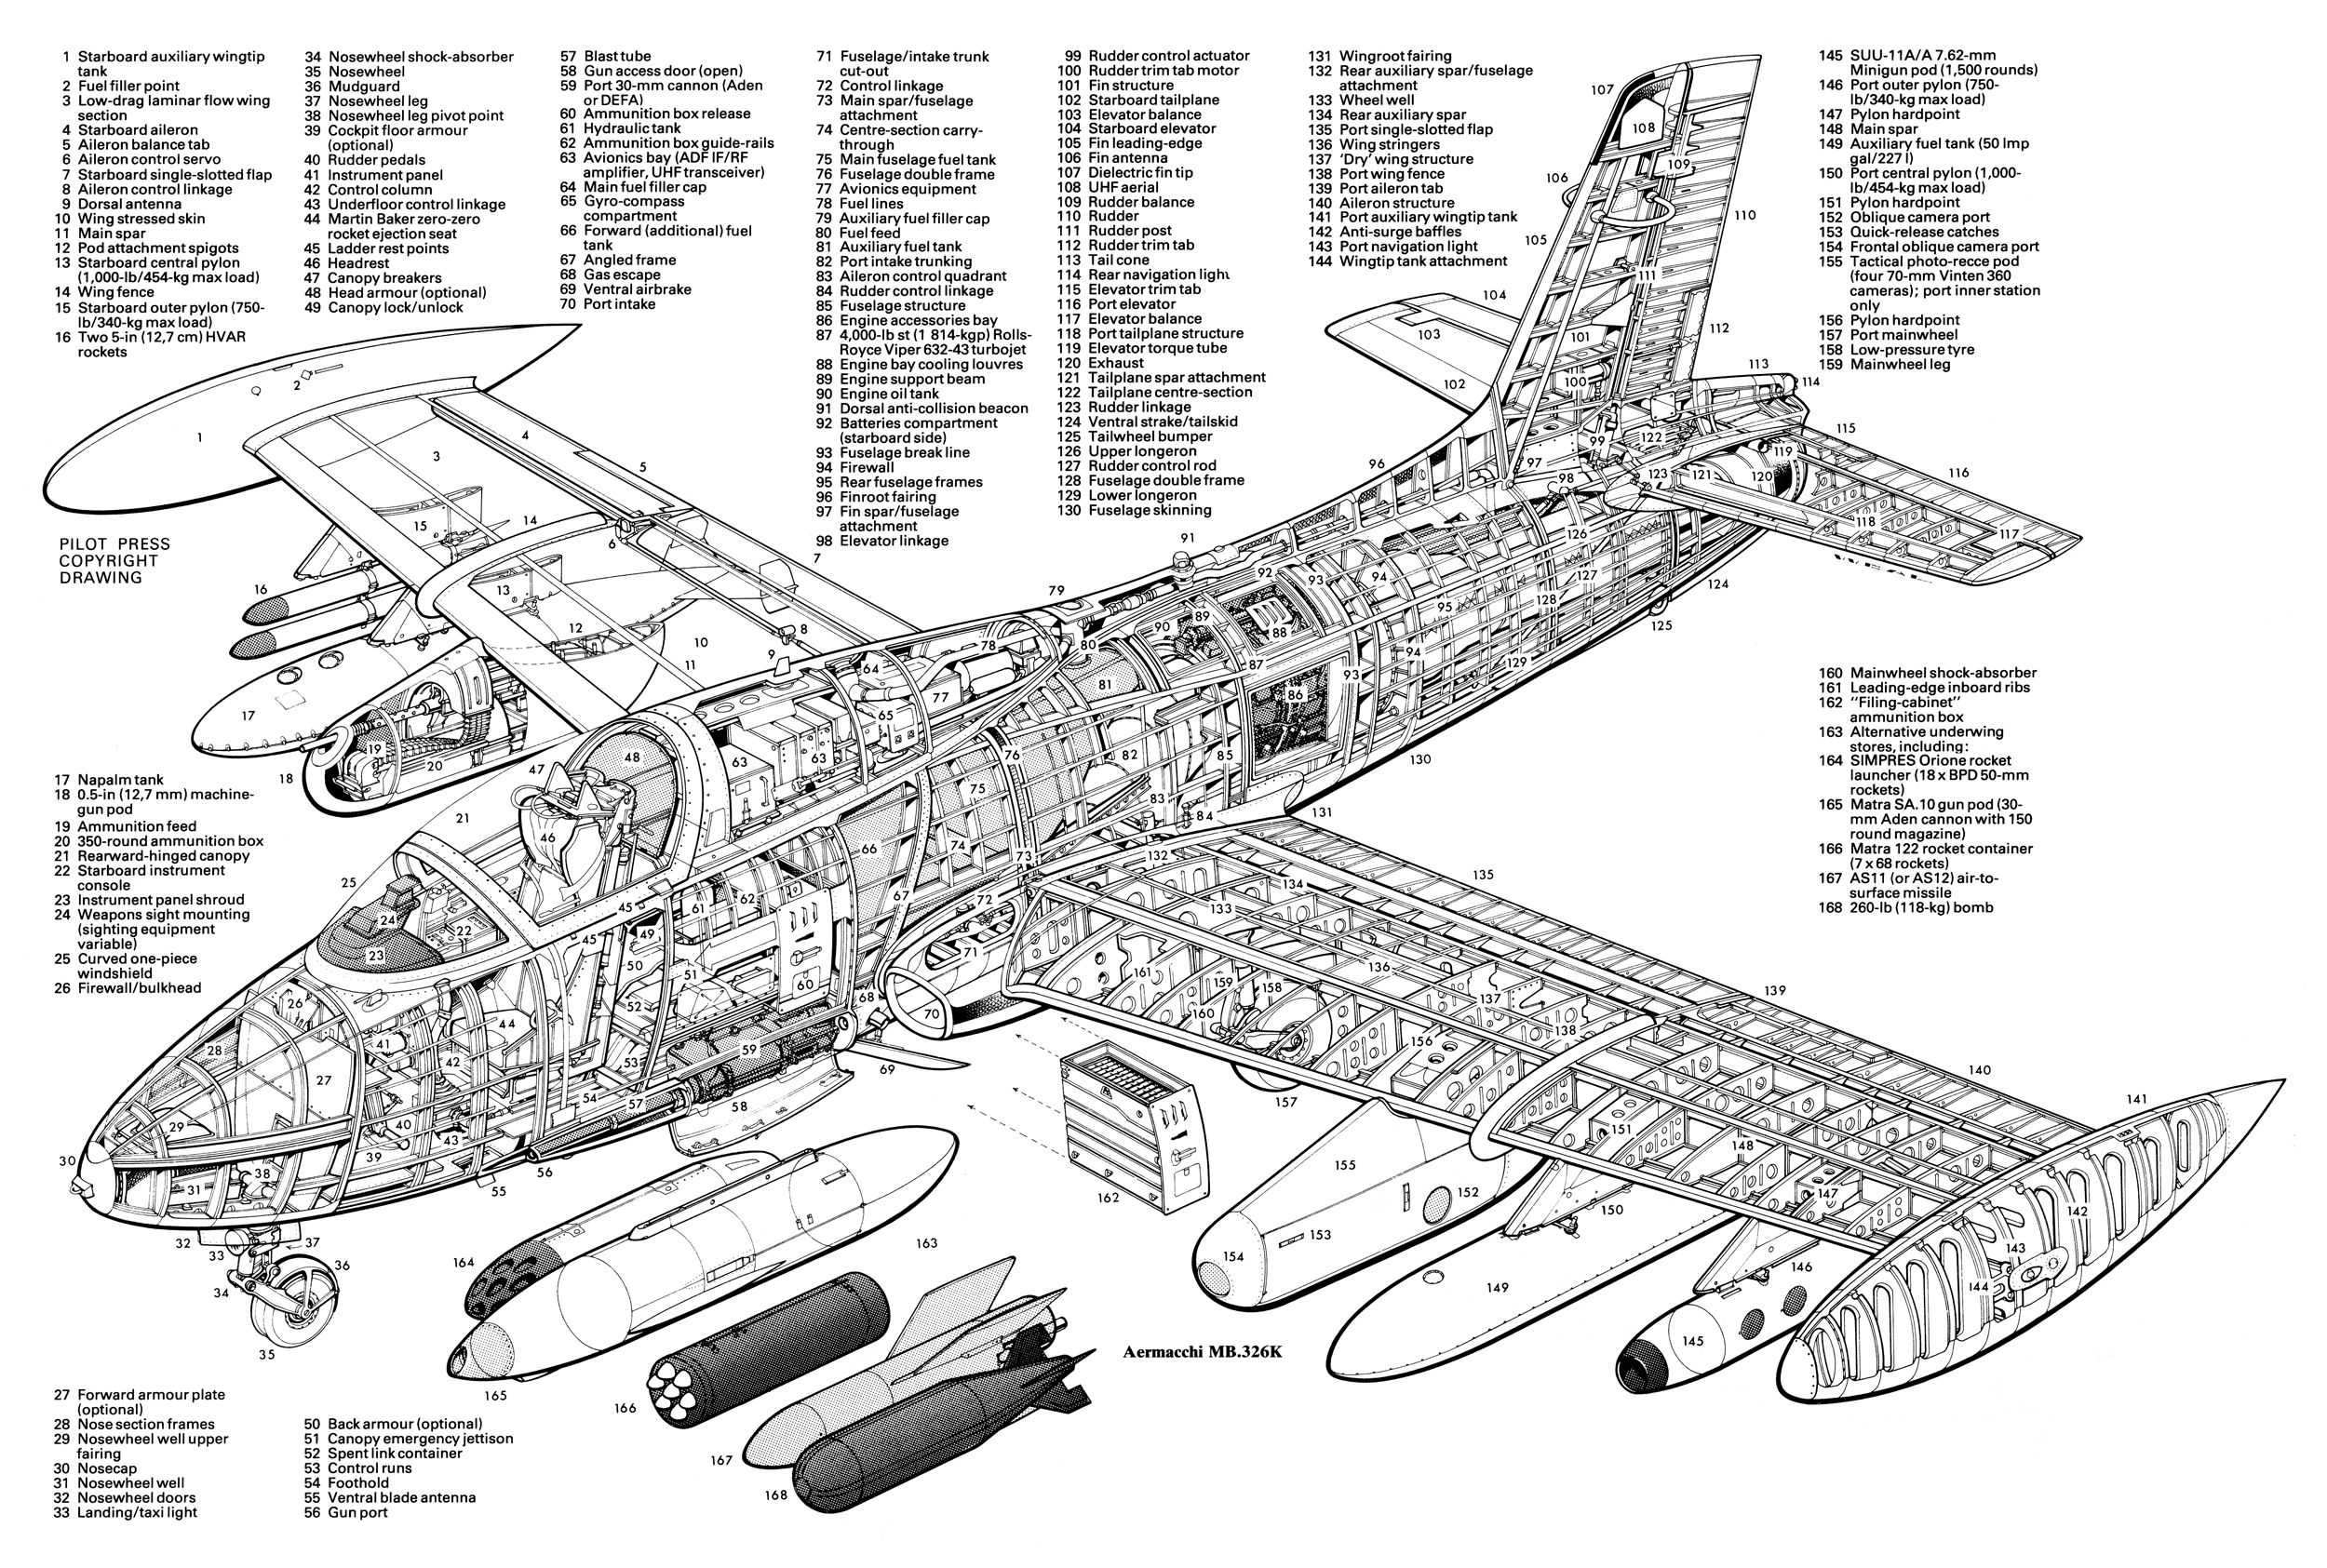 black hawk helicopter for sale with Page 68 on File UH 1 Huey Drawing further Brickmania Vietnam War Kit Archive together with Dustoff medical together with Page 68 furthermore Morrigan K Class Space Fighter In Hangar 358394887.